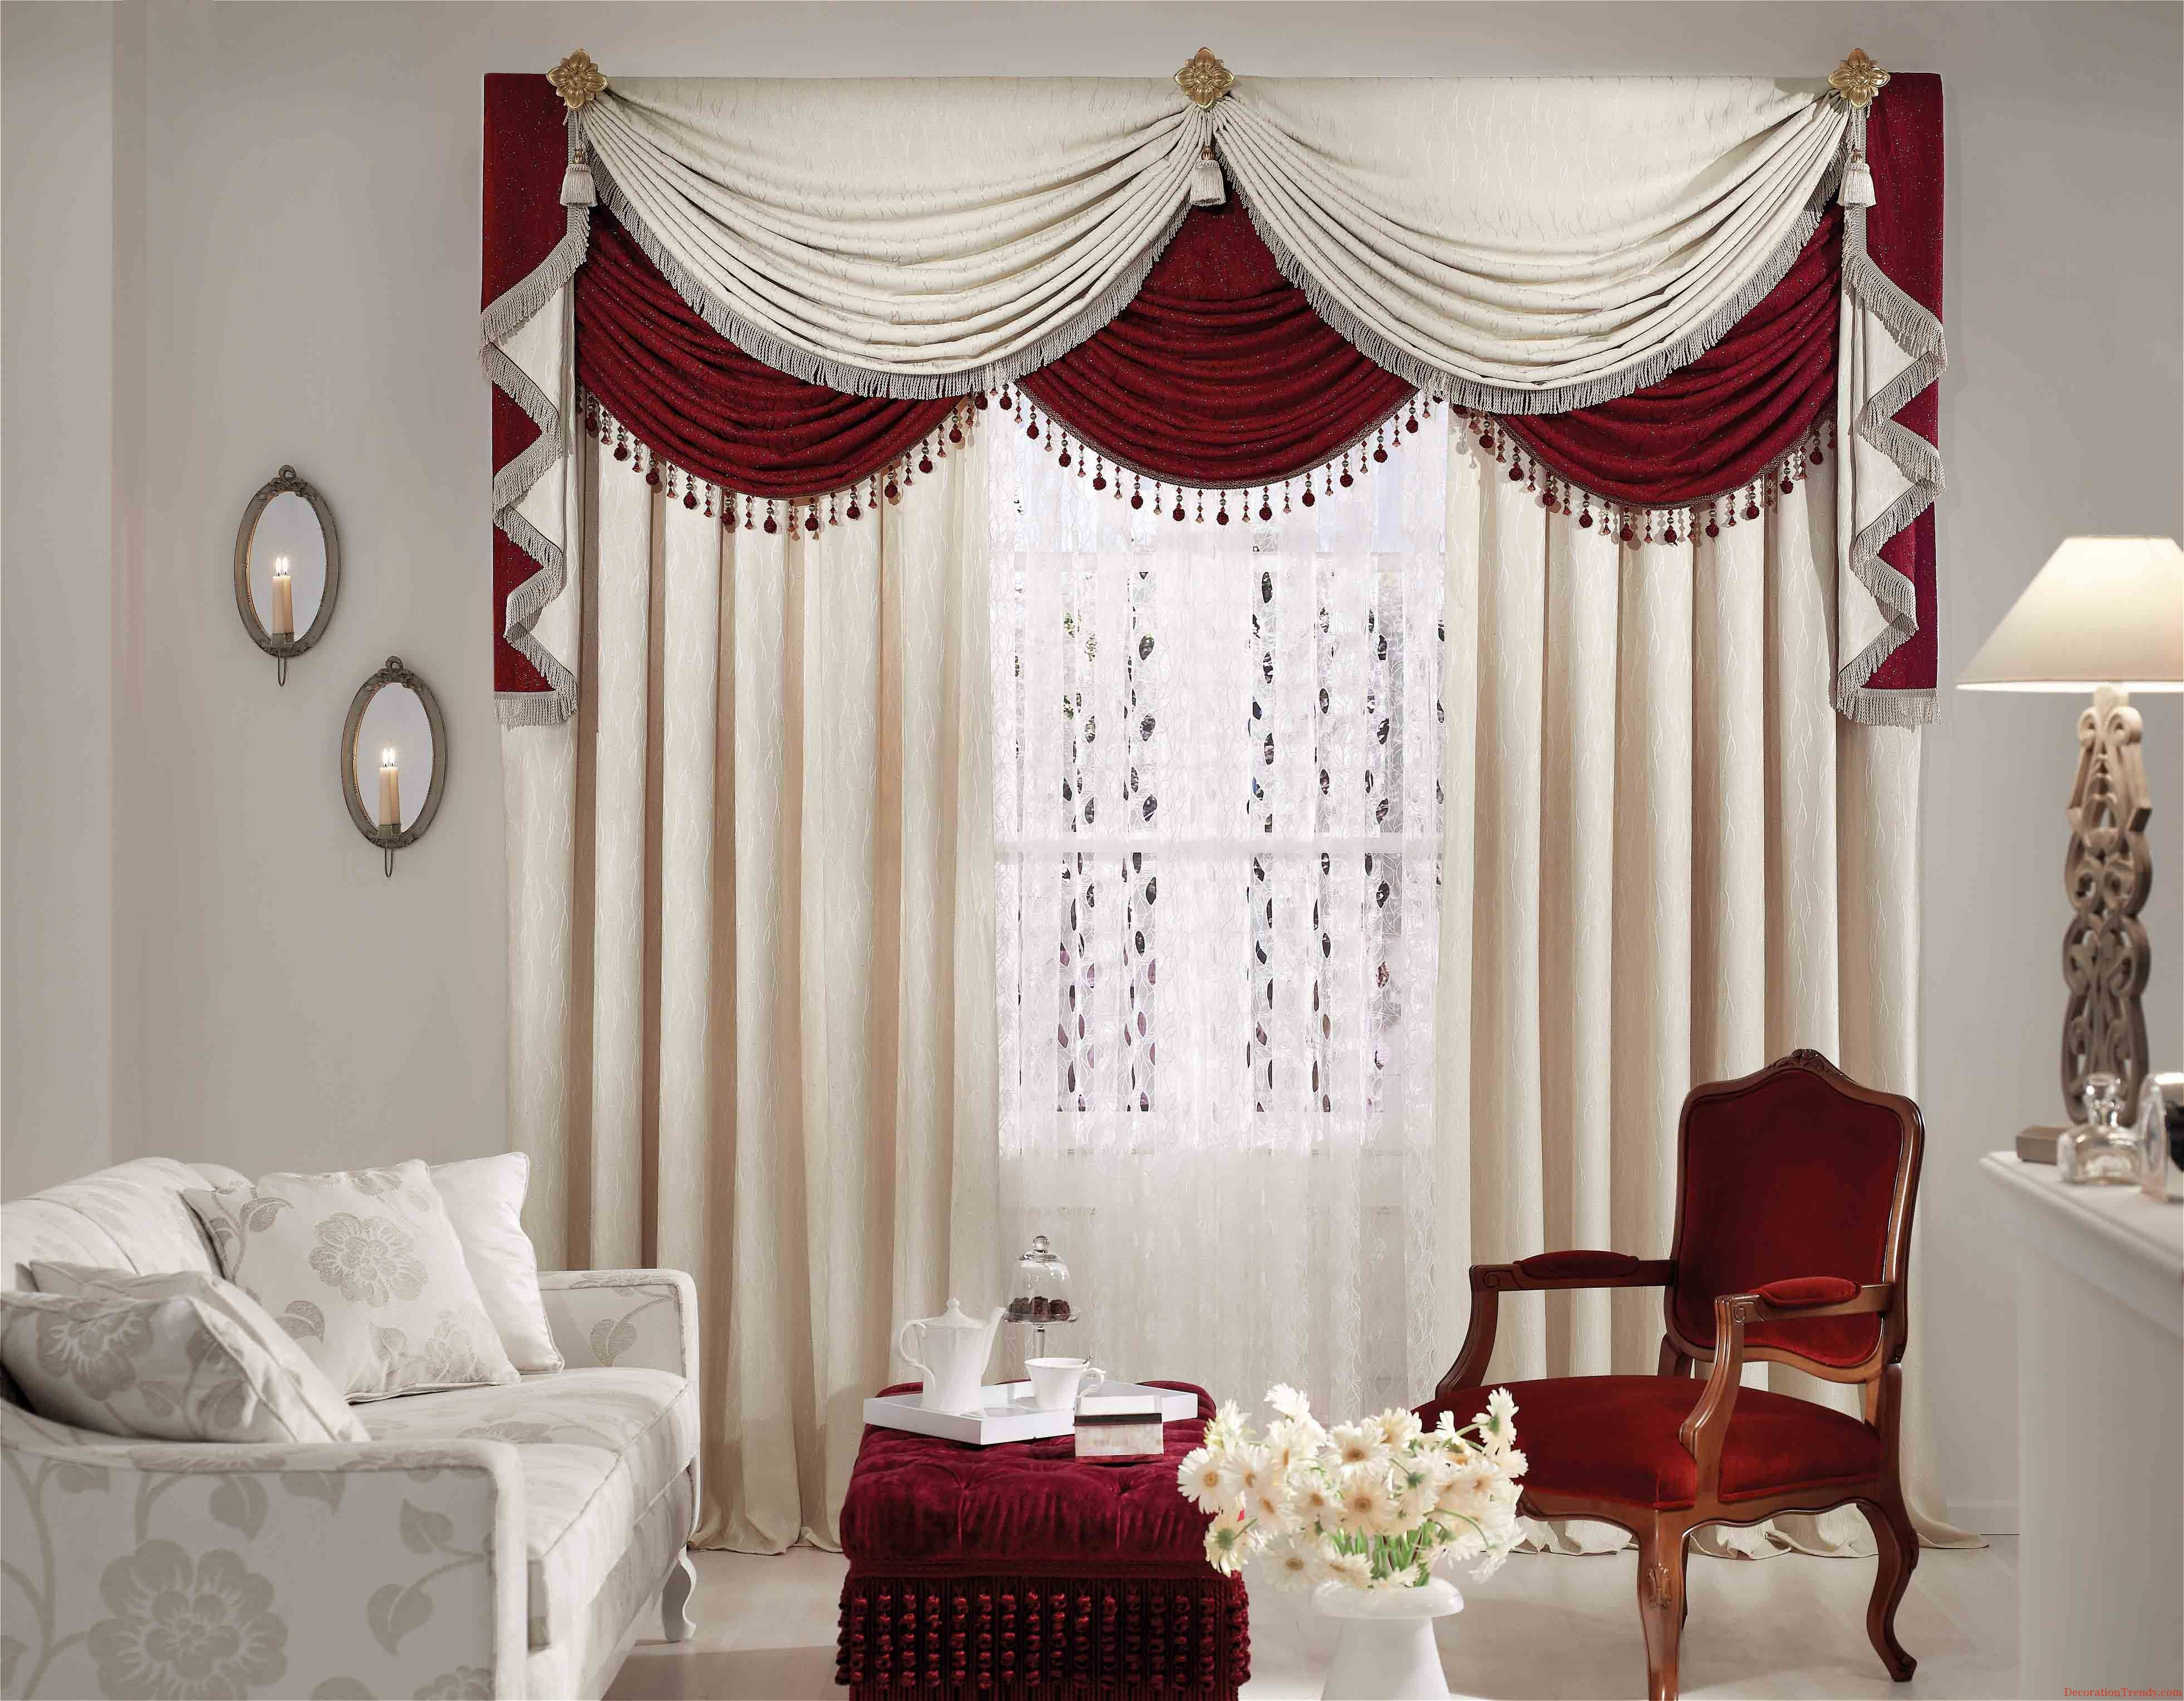 Beautiful Bedroom Curtains 40 Amazing & Stunning Curtain Design Ideas 2017  Curtain Designs